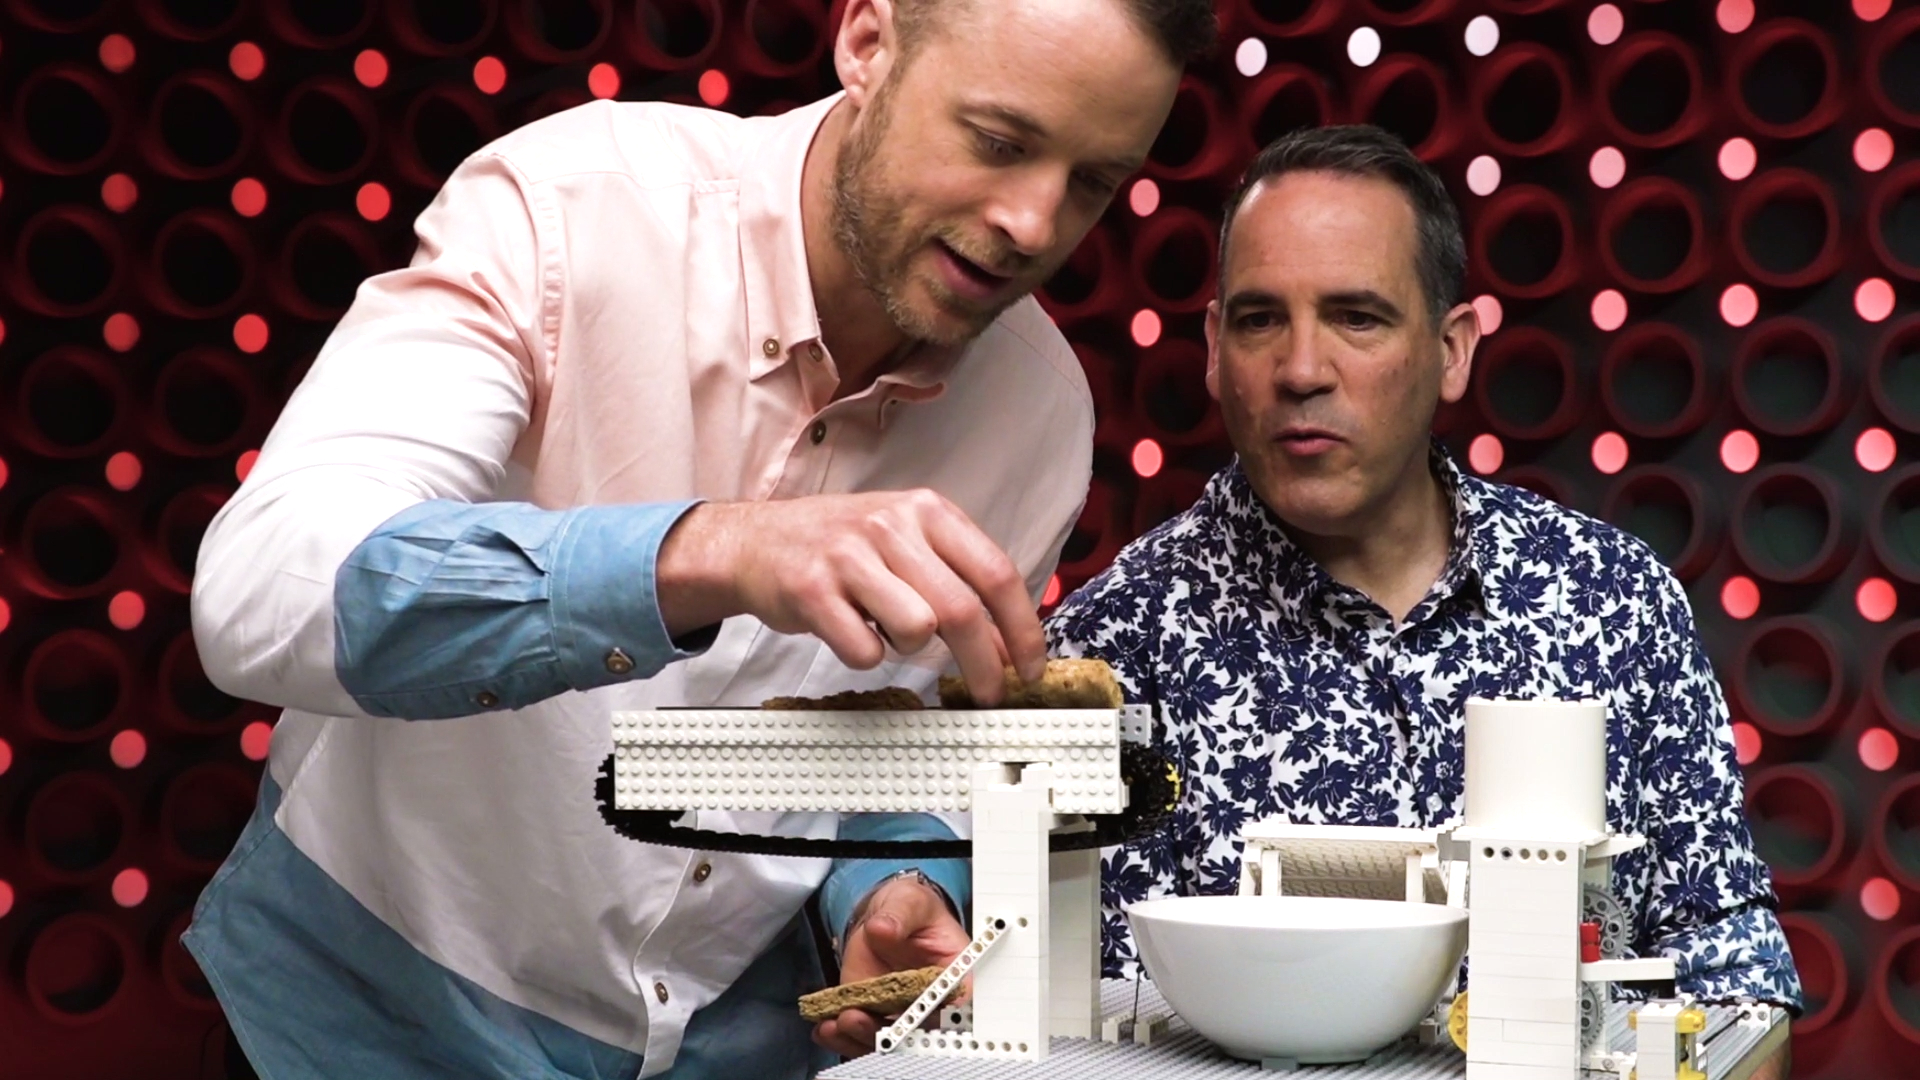 Hamish Blake challenges Brickman to make a breakfast machine out of LEGO